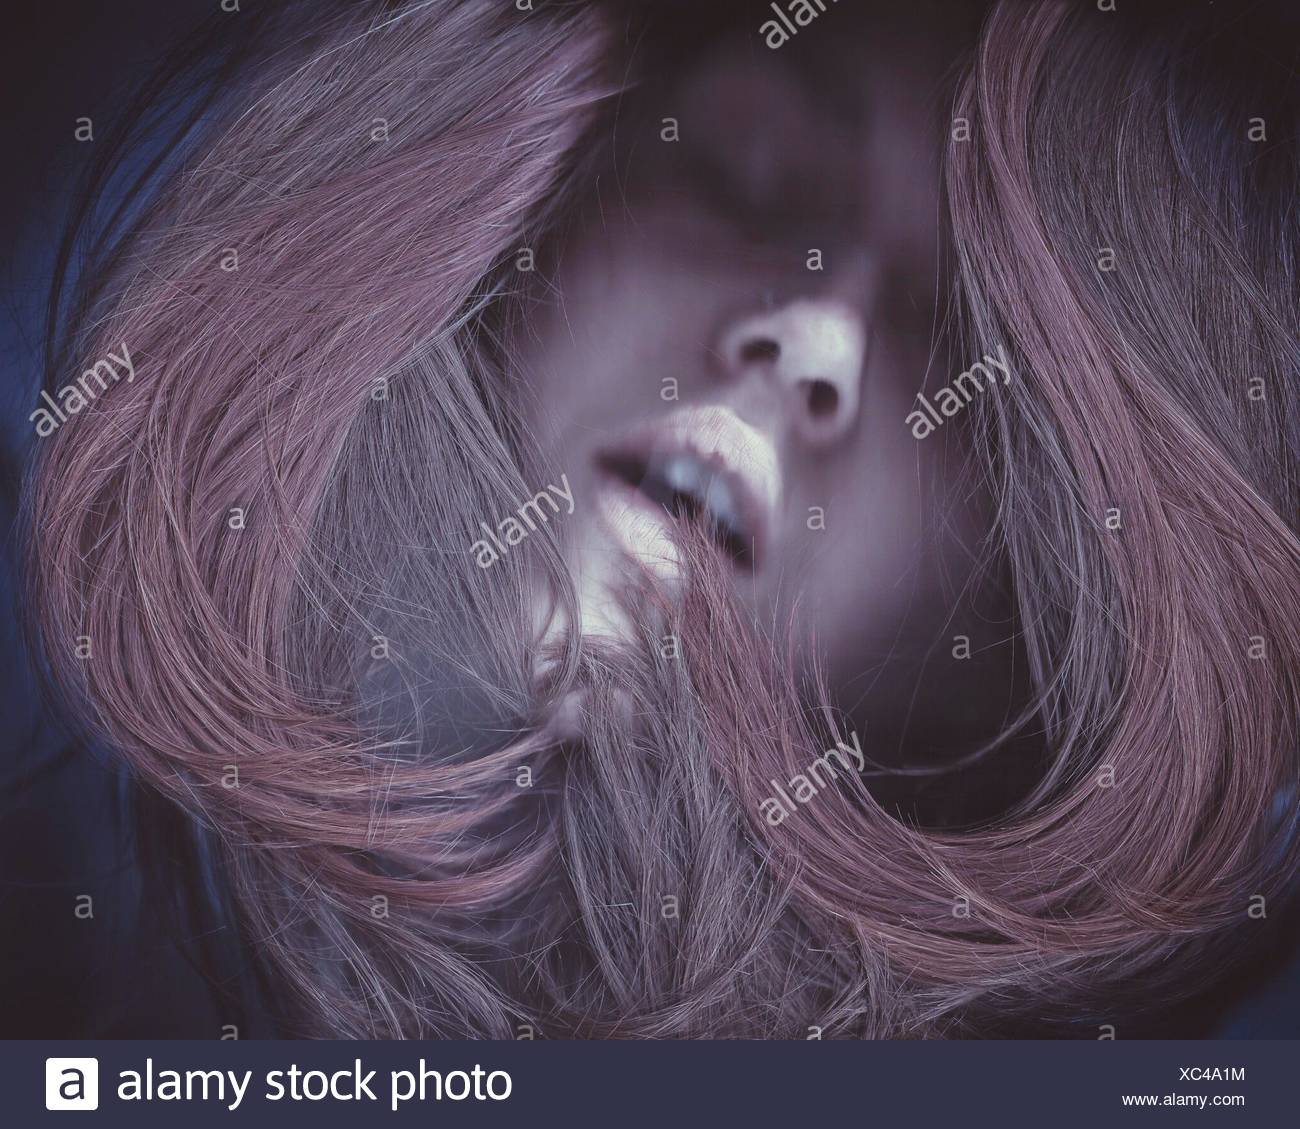 Portrait of Woman avec les cheveux teints Photo Stock